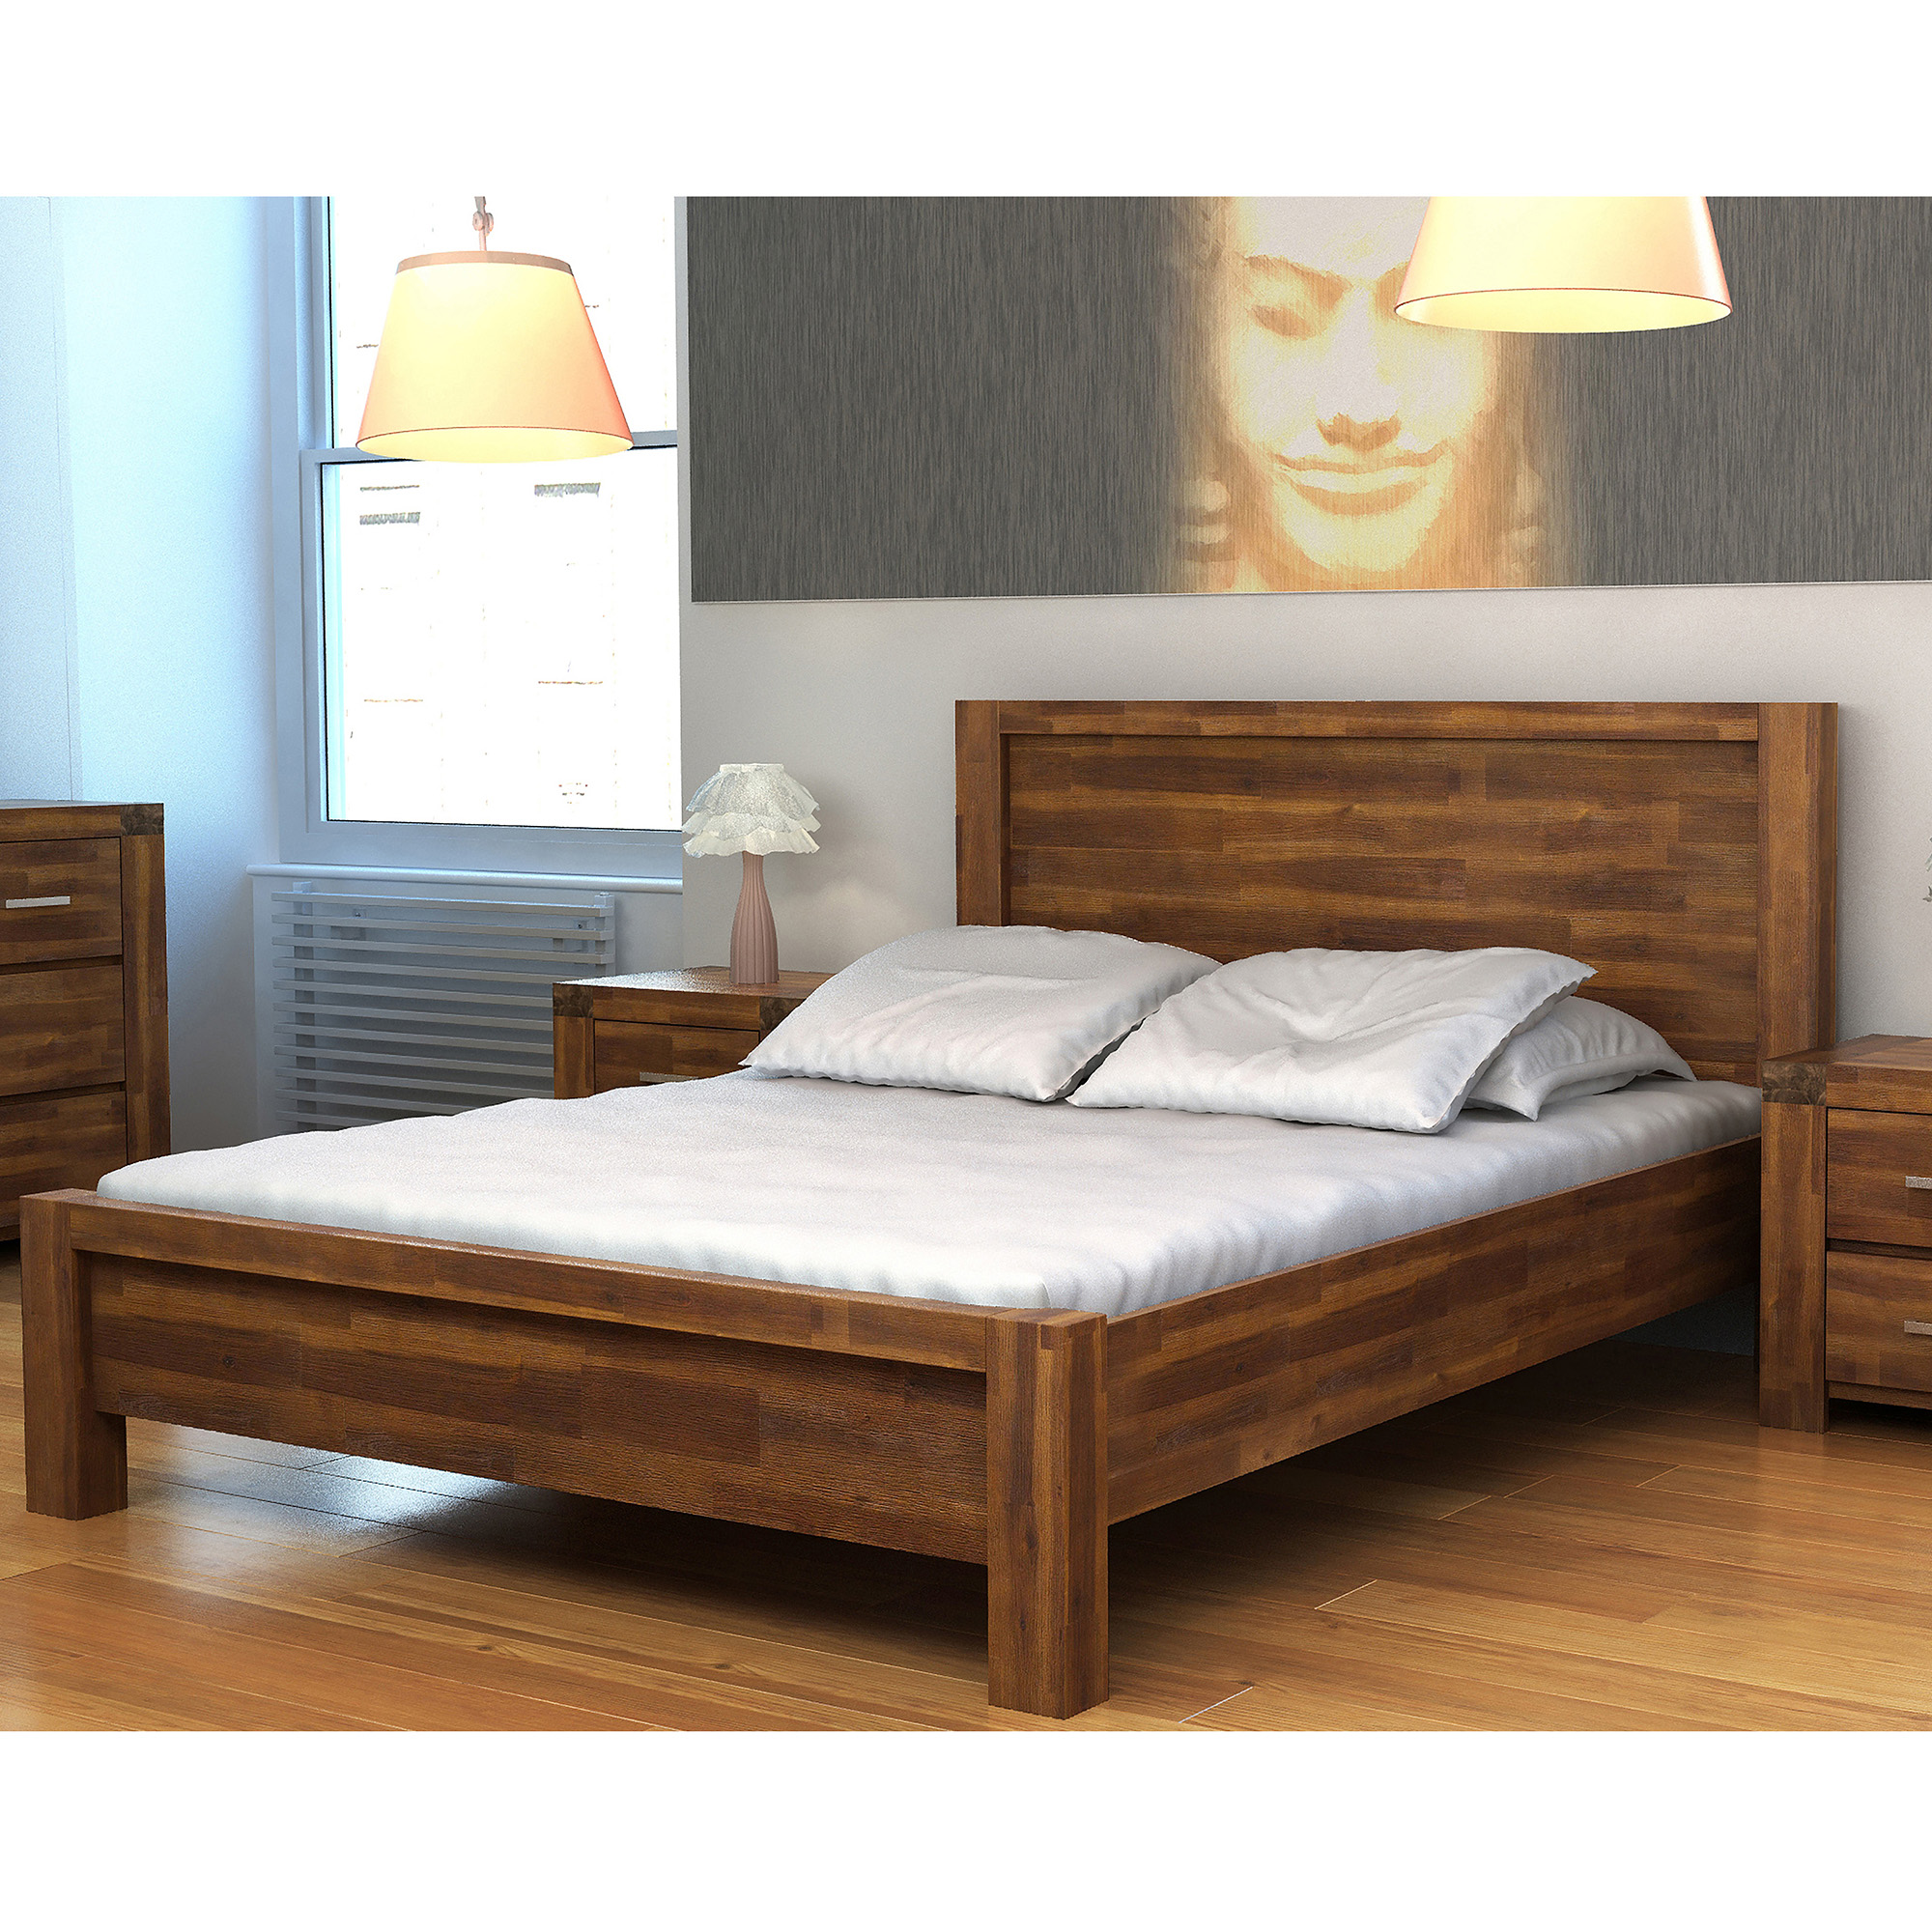 Your Guide to Buying the Perfect Bed | Worldwide Homefurnishings Inc.